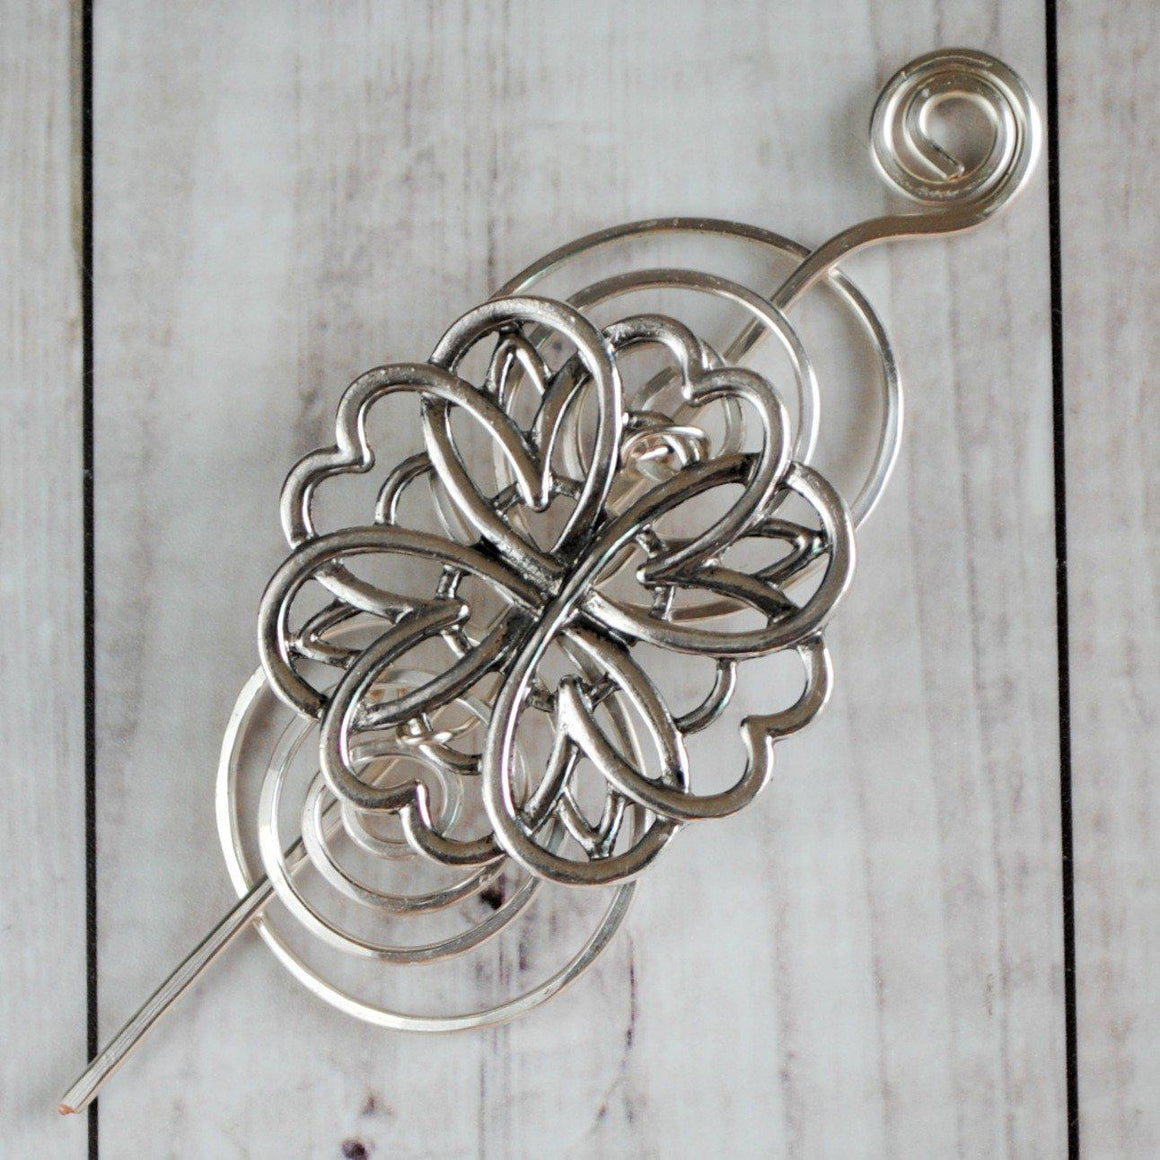 Shawl Pin, Pre-Order - Friendship Shawl Pin - Charmed Silver - Crafty Flutterby Creations